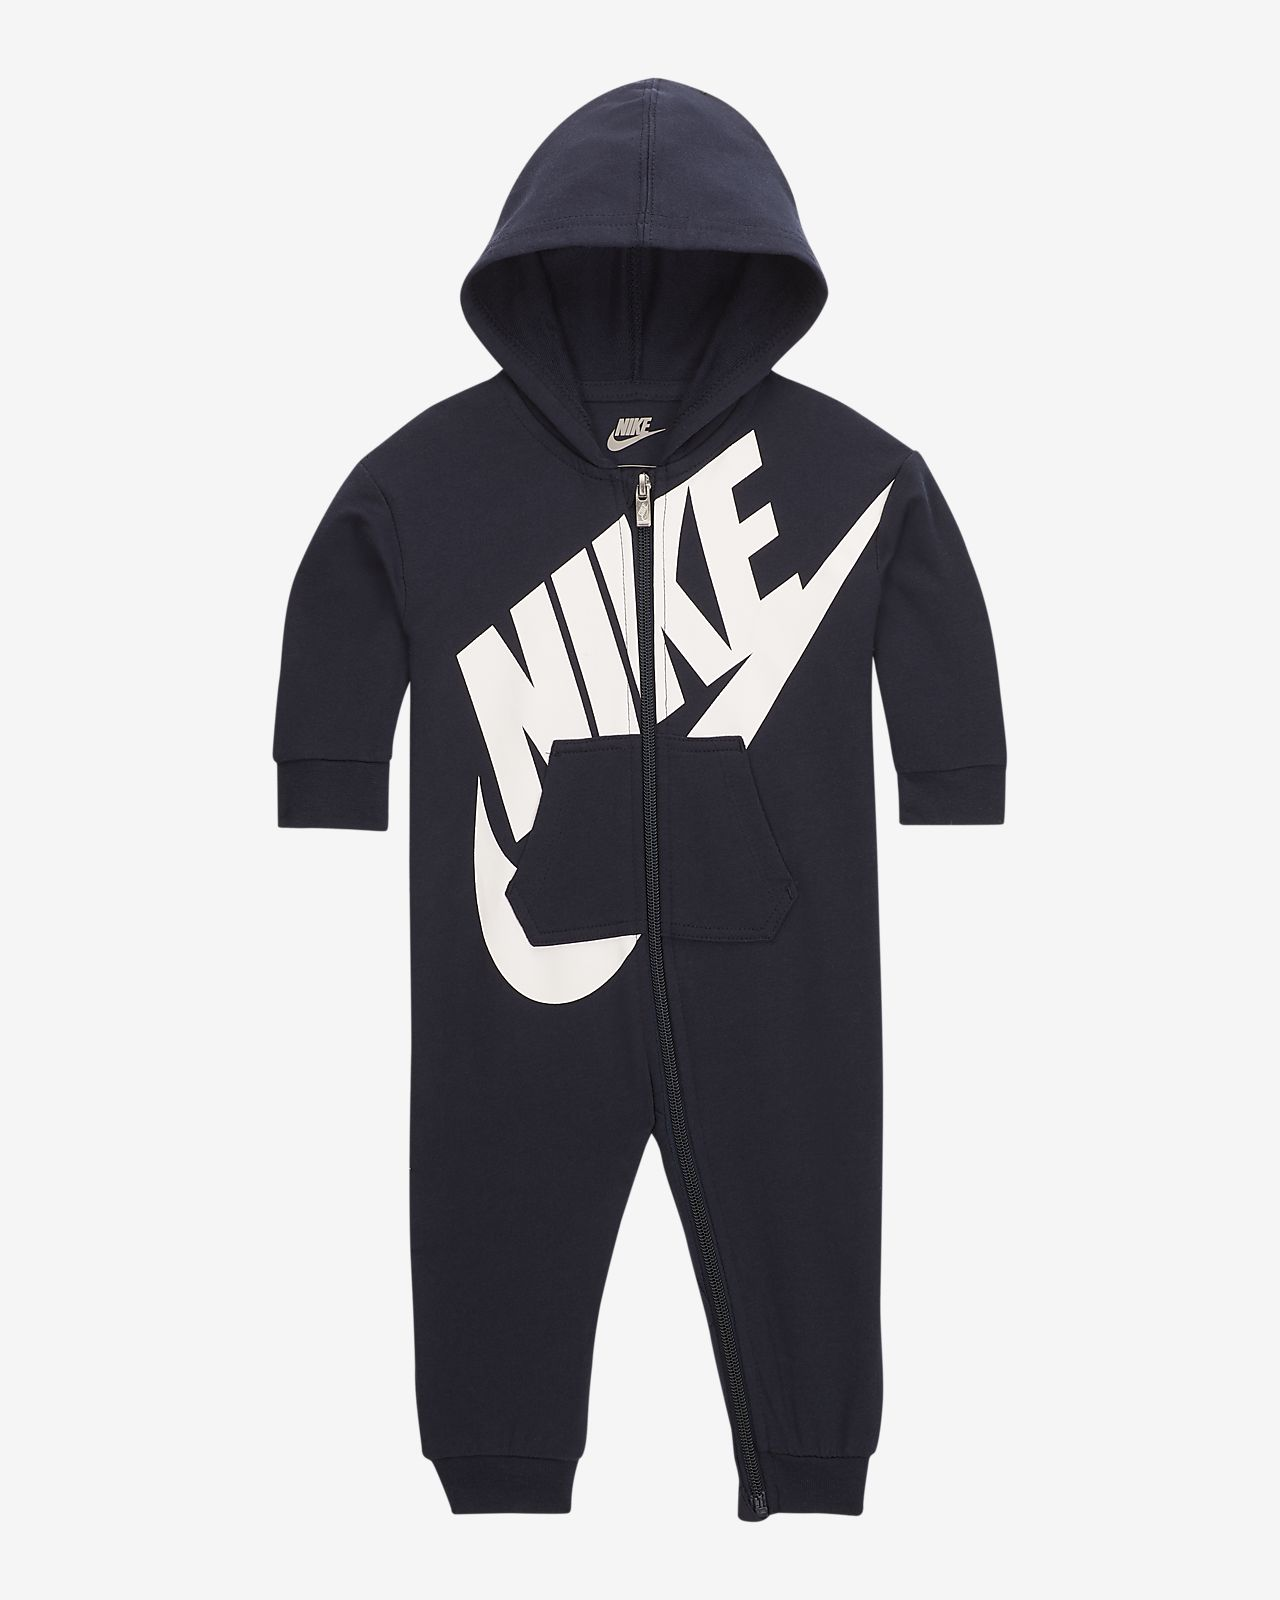 Nike Baby (0-9M) Coverall